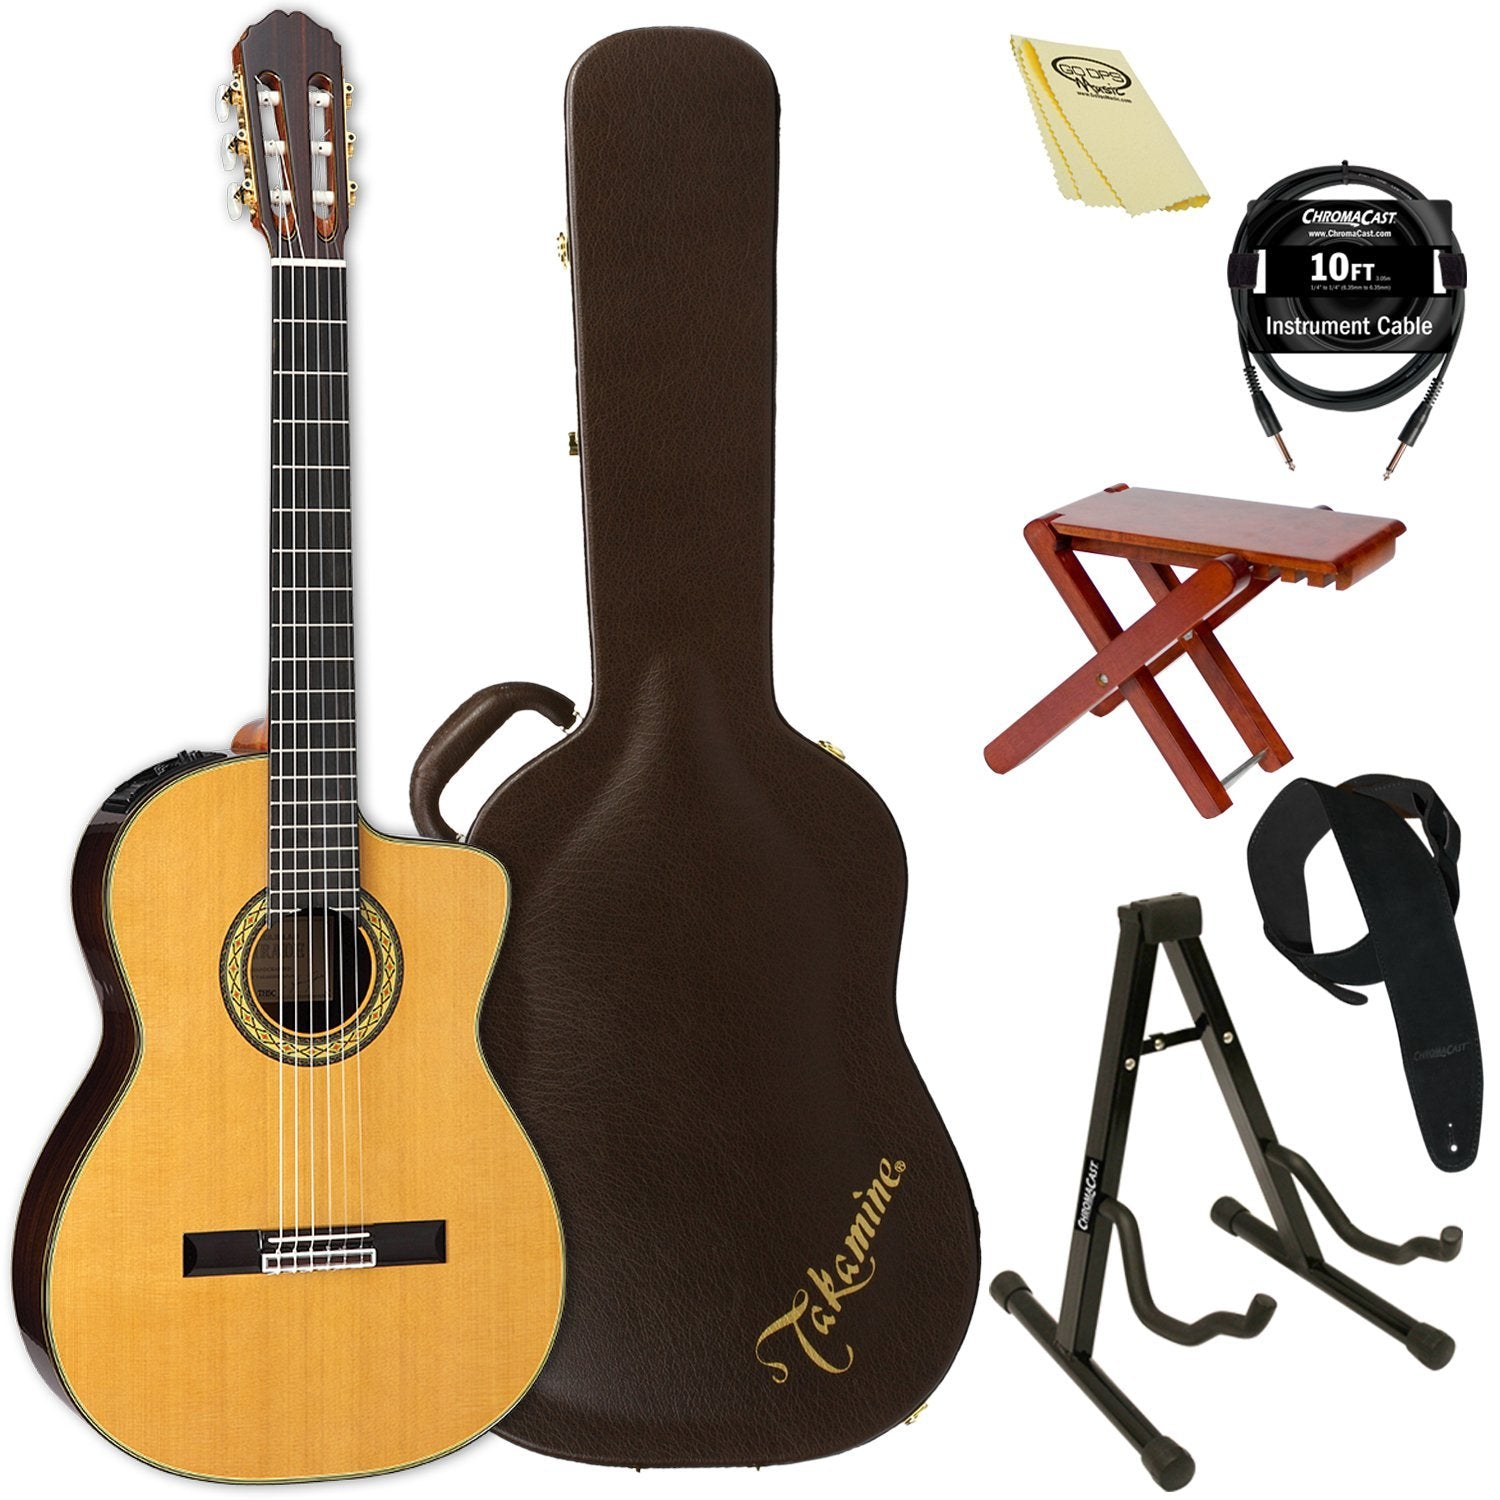 1ff464d565 Takamine Classical Nylon String Acoustic Guitar with Hard Case & ChromaCast  Accessories